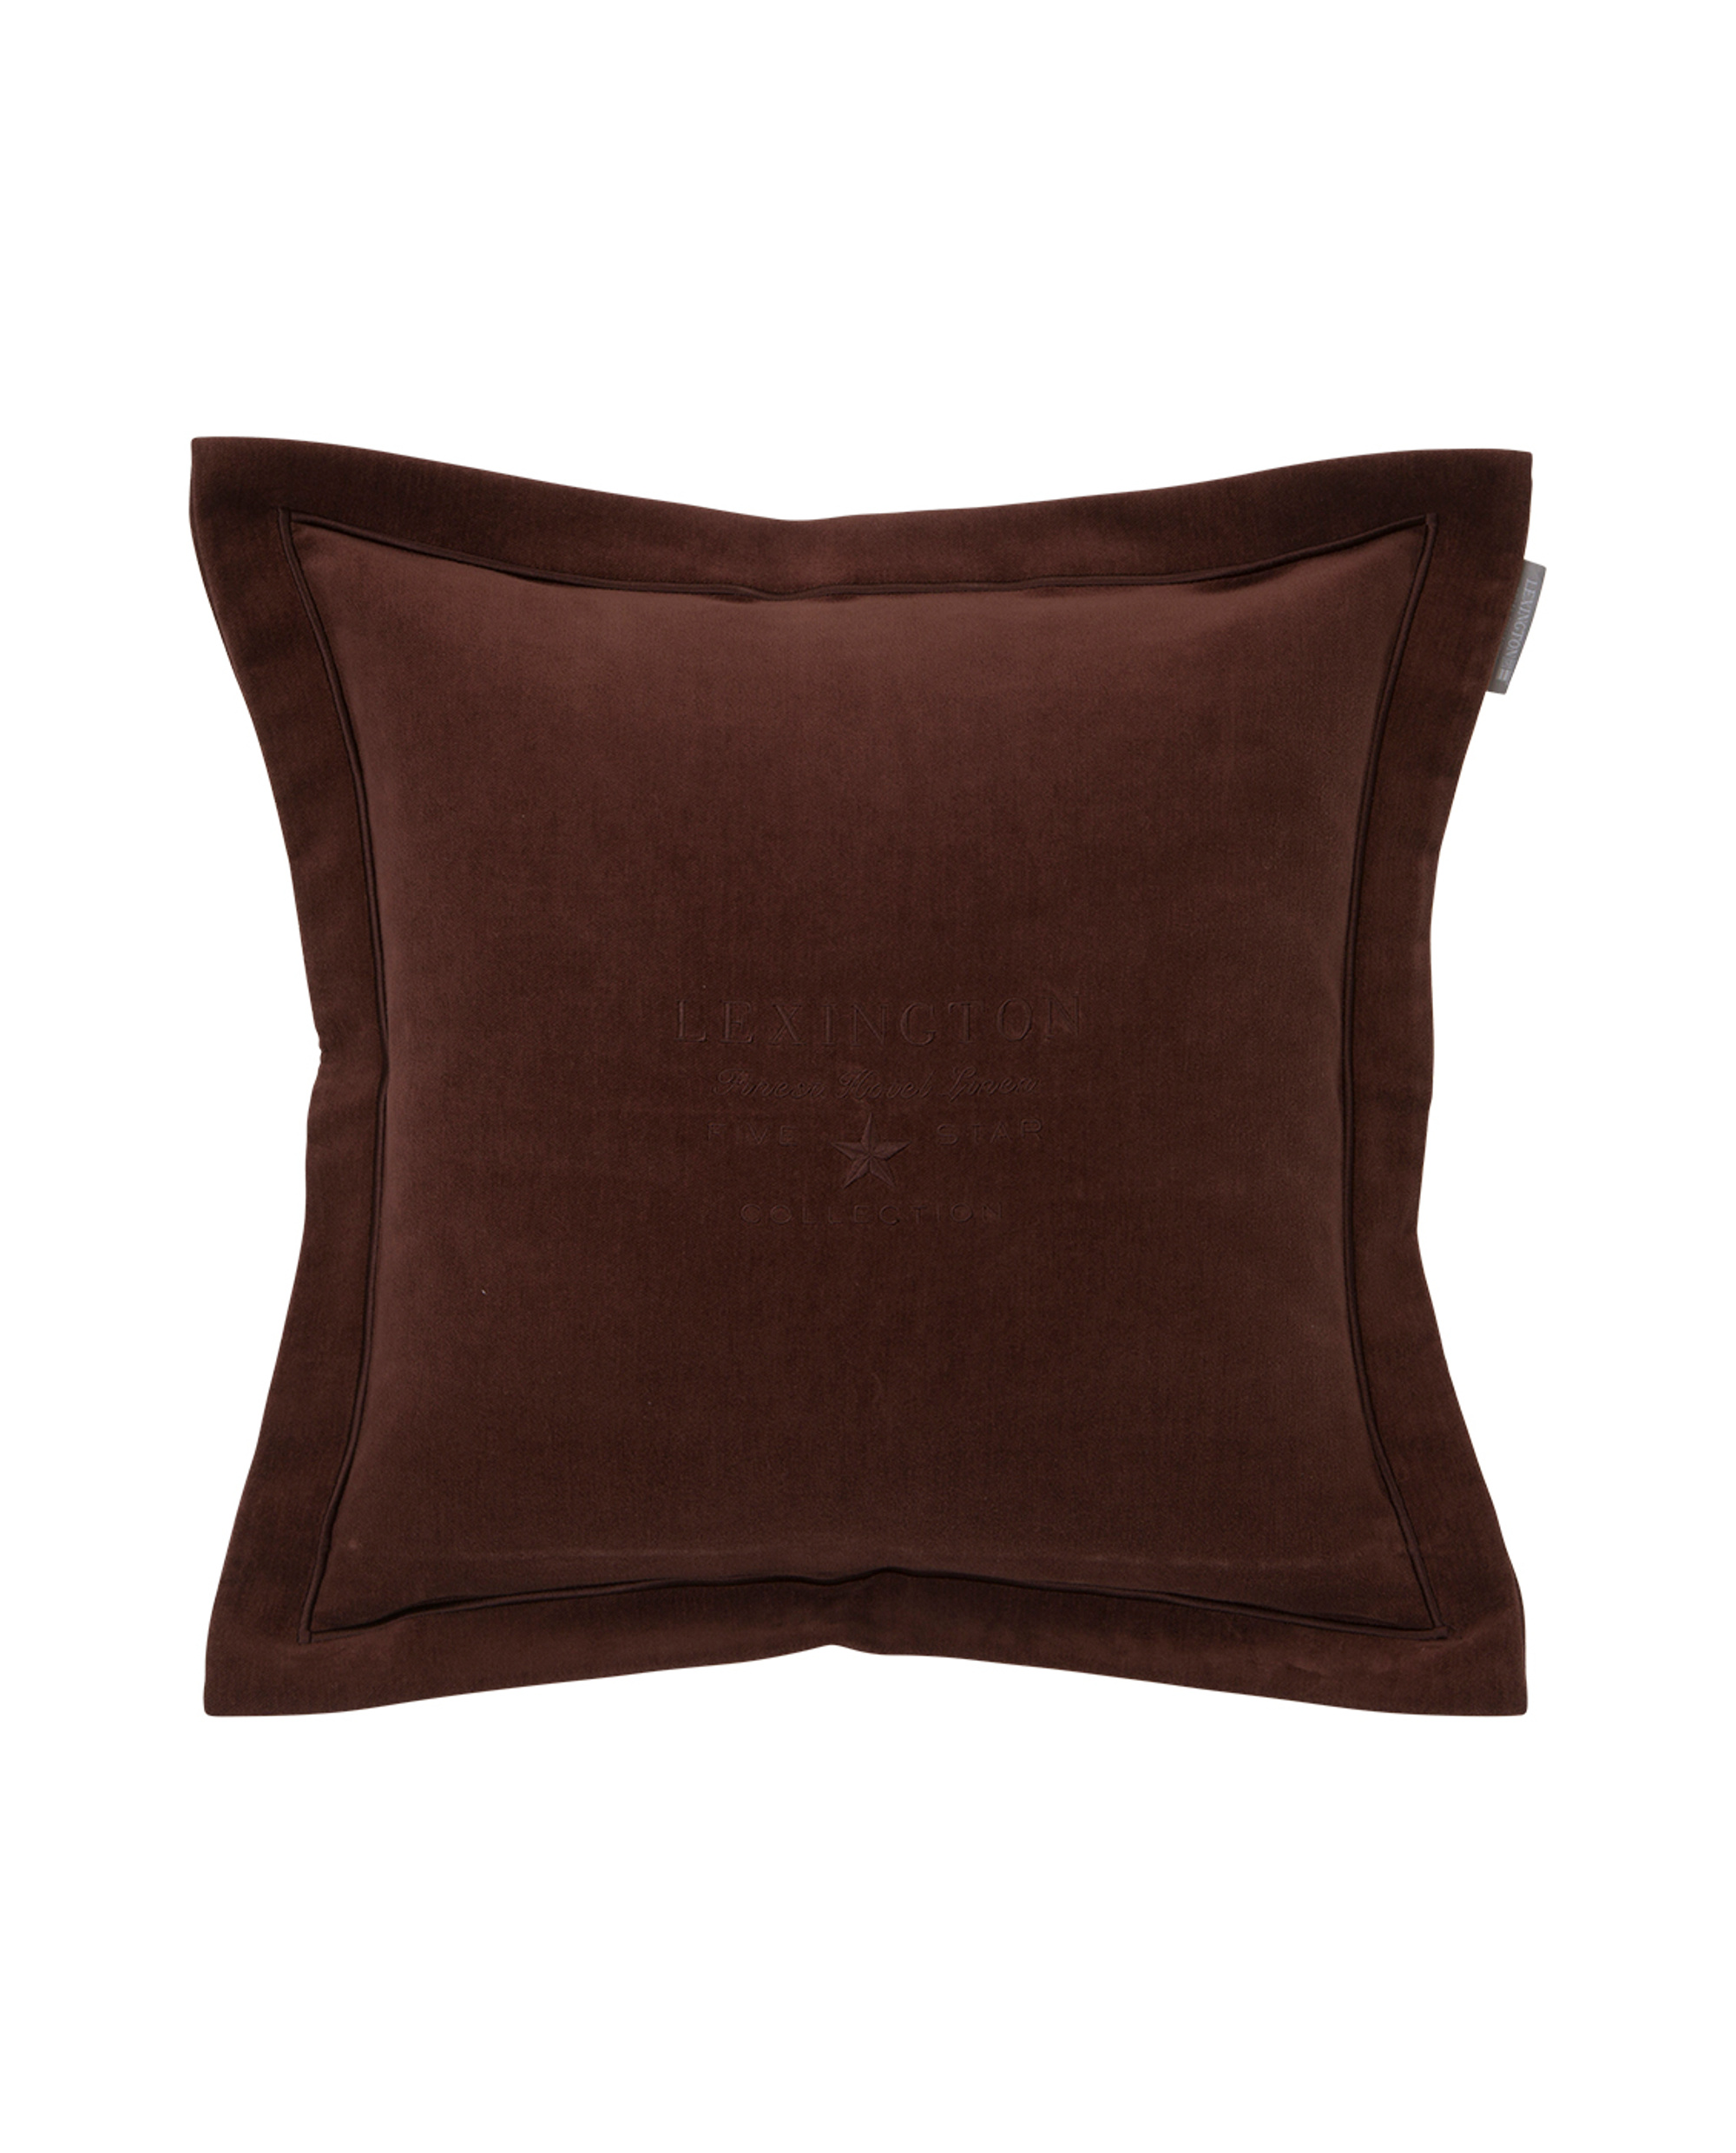 Hotel Velvet Sham with Embroidery, Chestnut